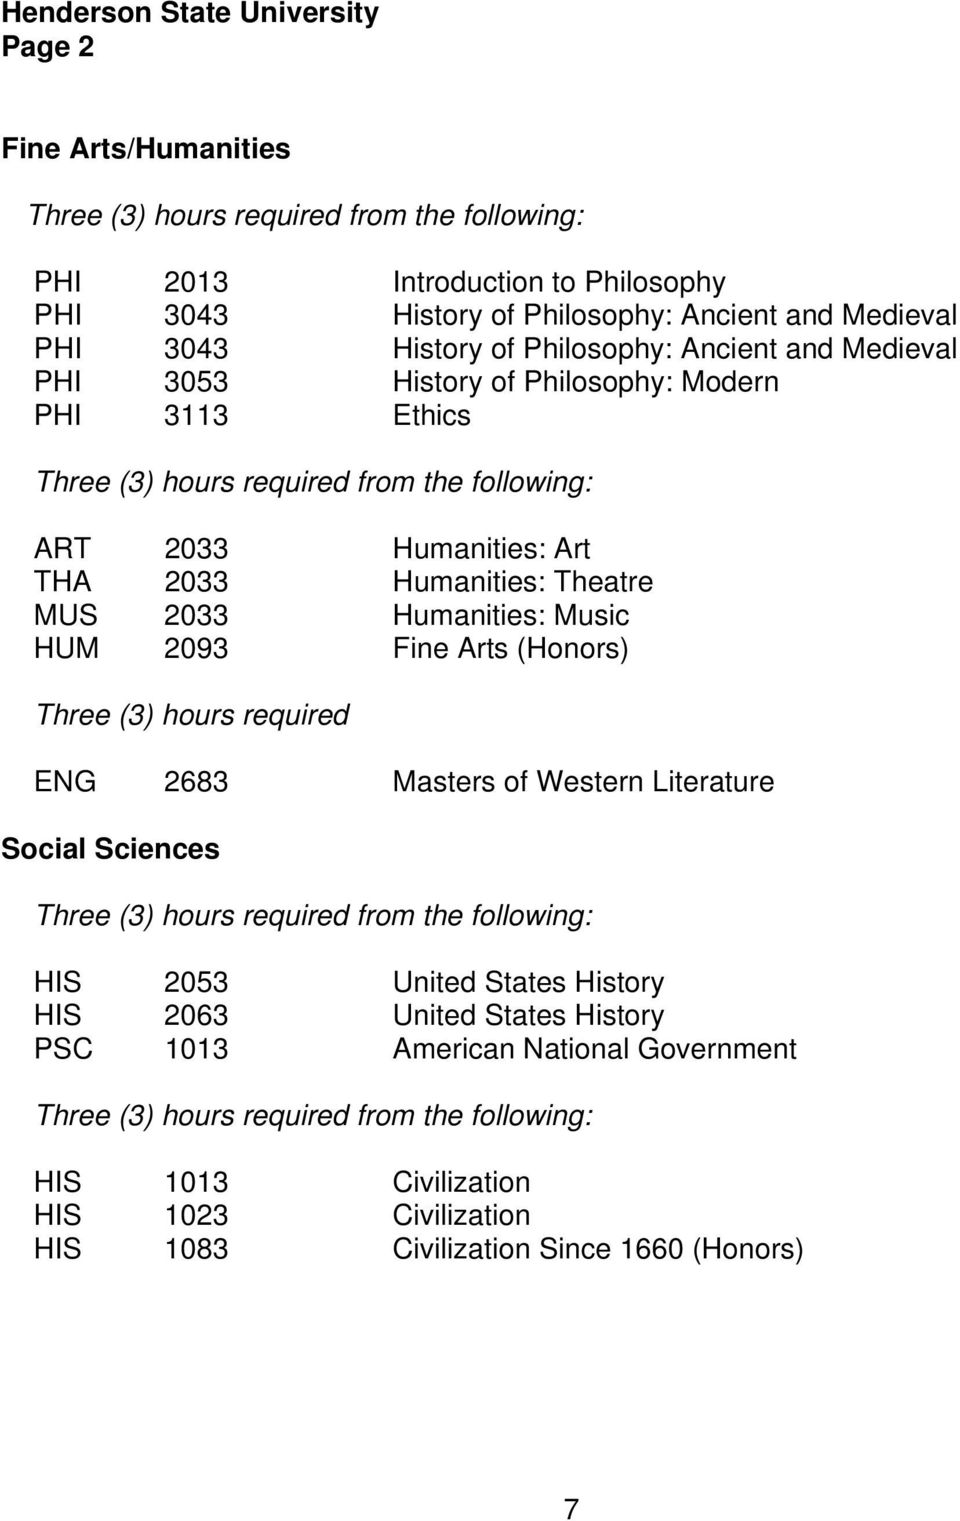 2033 Humanities: Music HUM 2093 Fine Arts (Honors) Three (3) hours required ENG 2683 Masters of Western Literature Social Sciences HIS 2053 United States